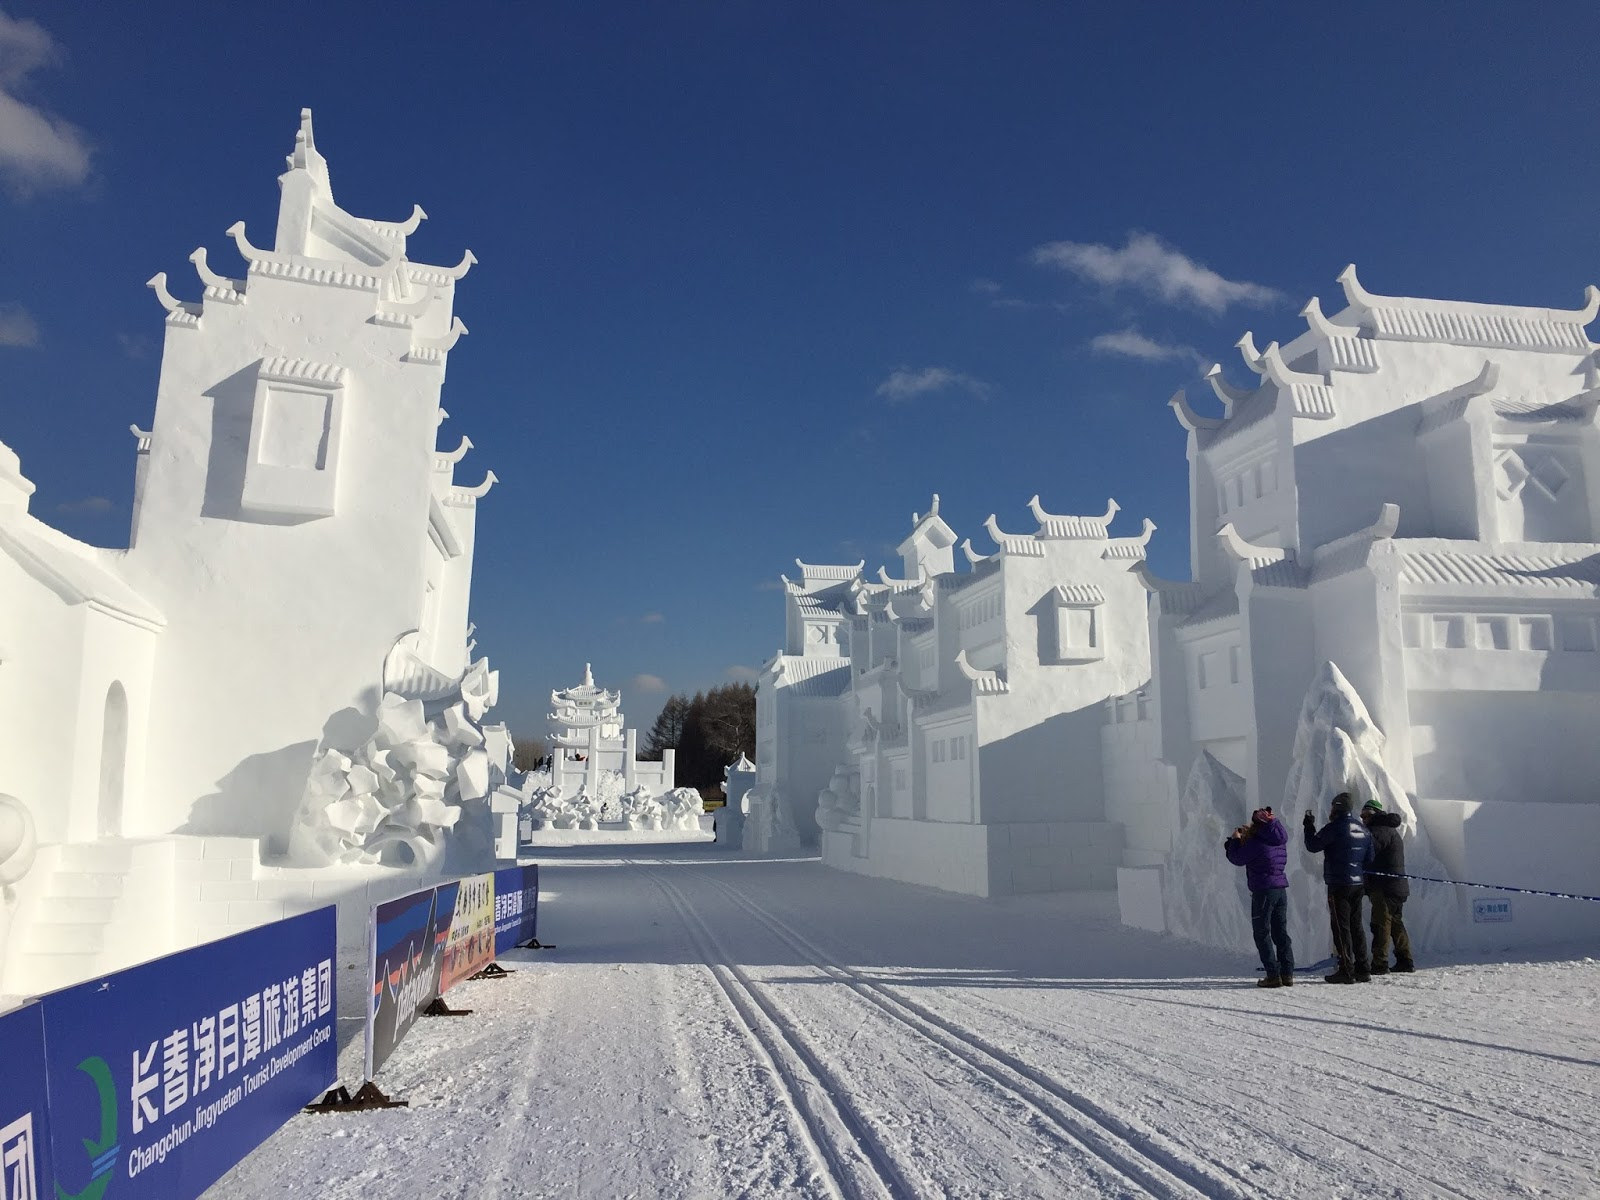 https://fasterskier.com/wp-content/blogs.dir/1/files/2016/12/snow-sculptures-in-stadium-photo-Holly.jpg